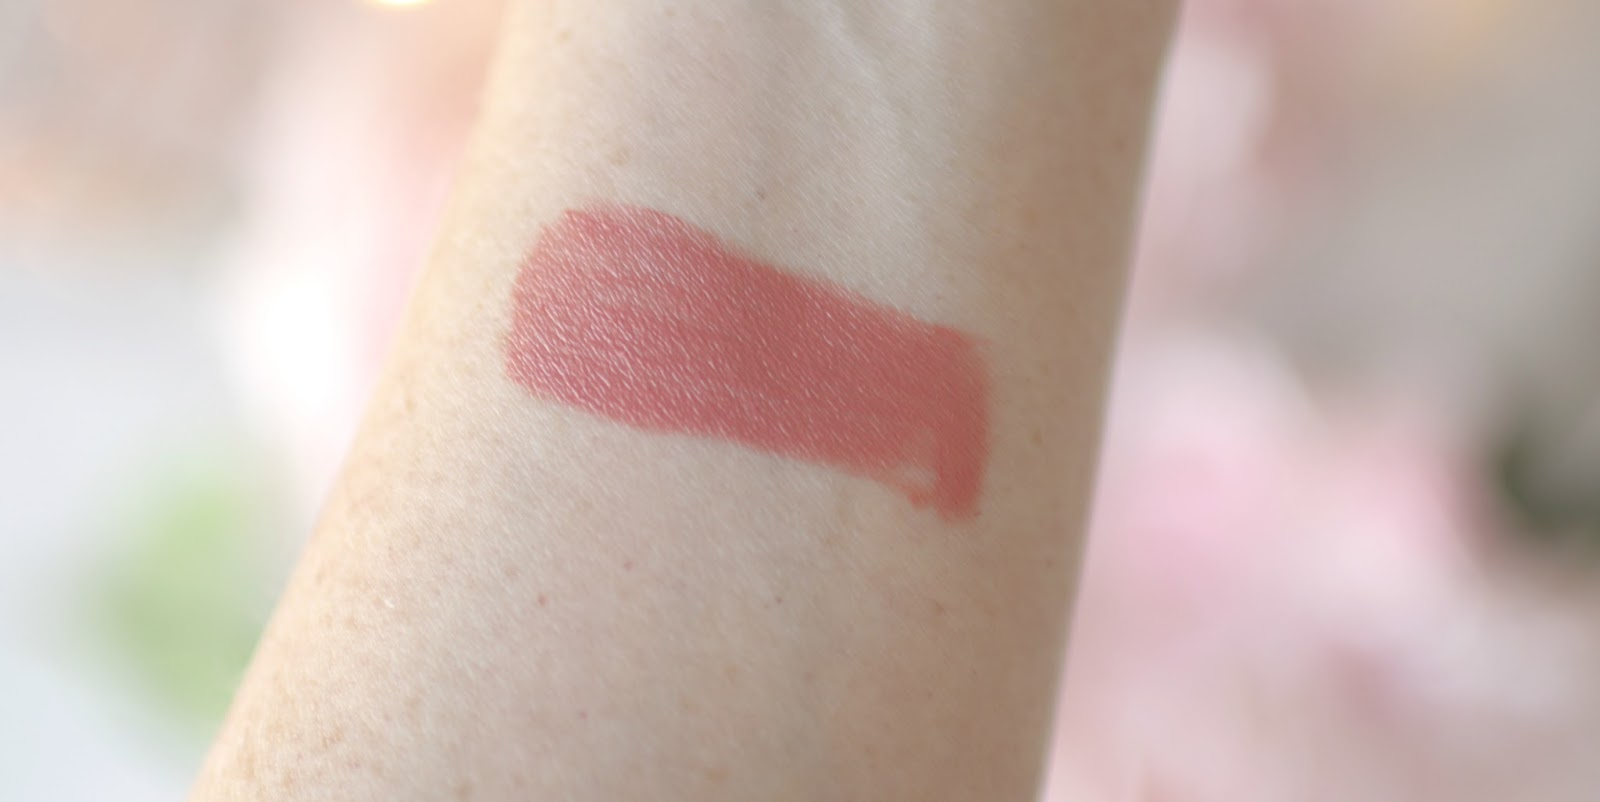 Melting Pout Matte Liquid Lipstick by Covergirl #21